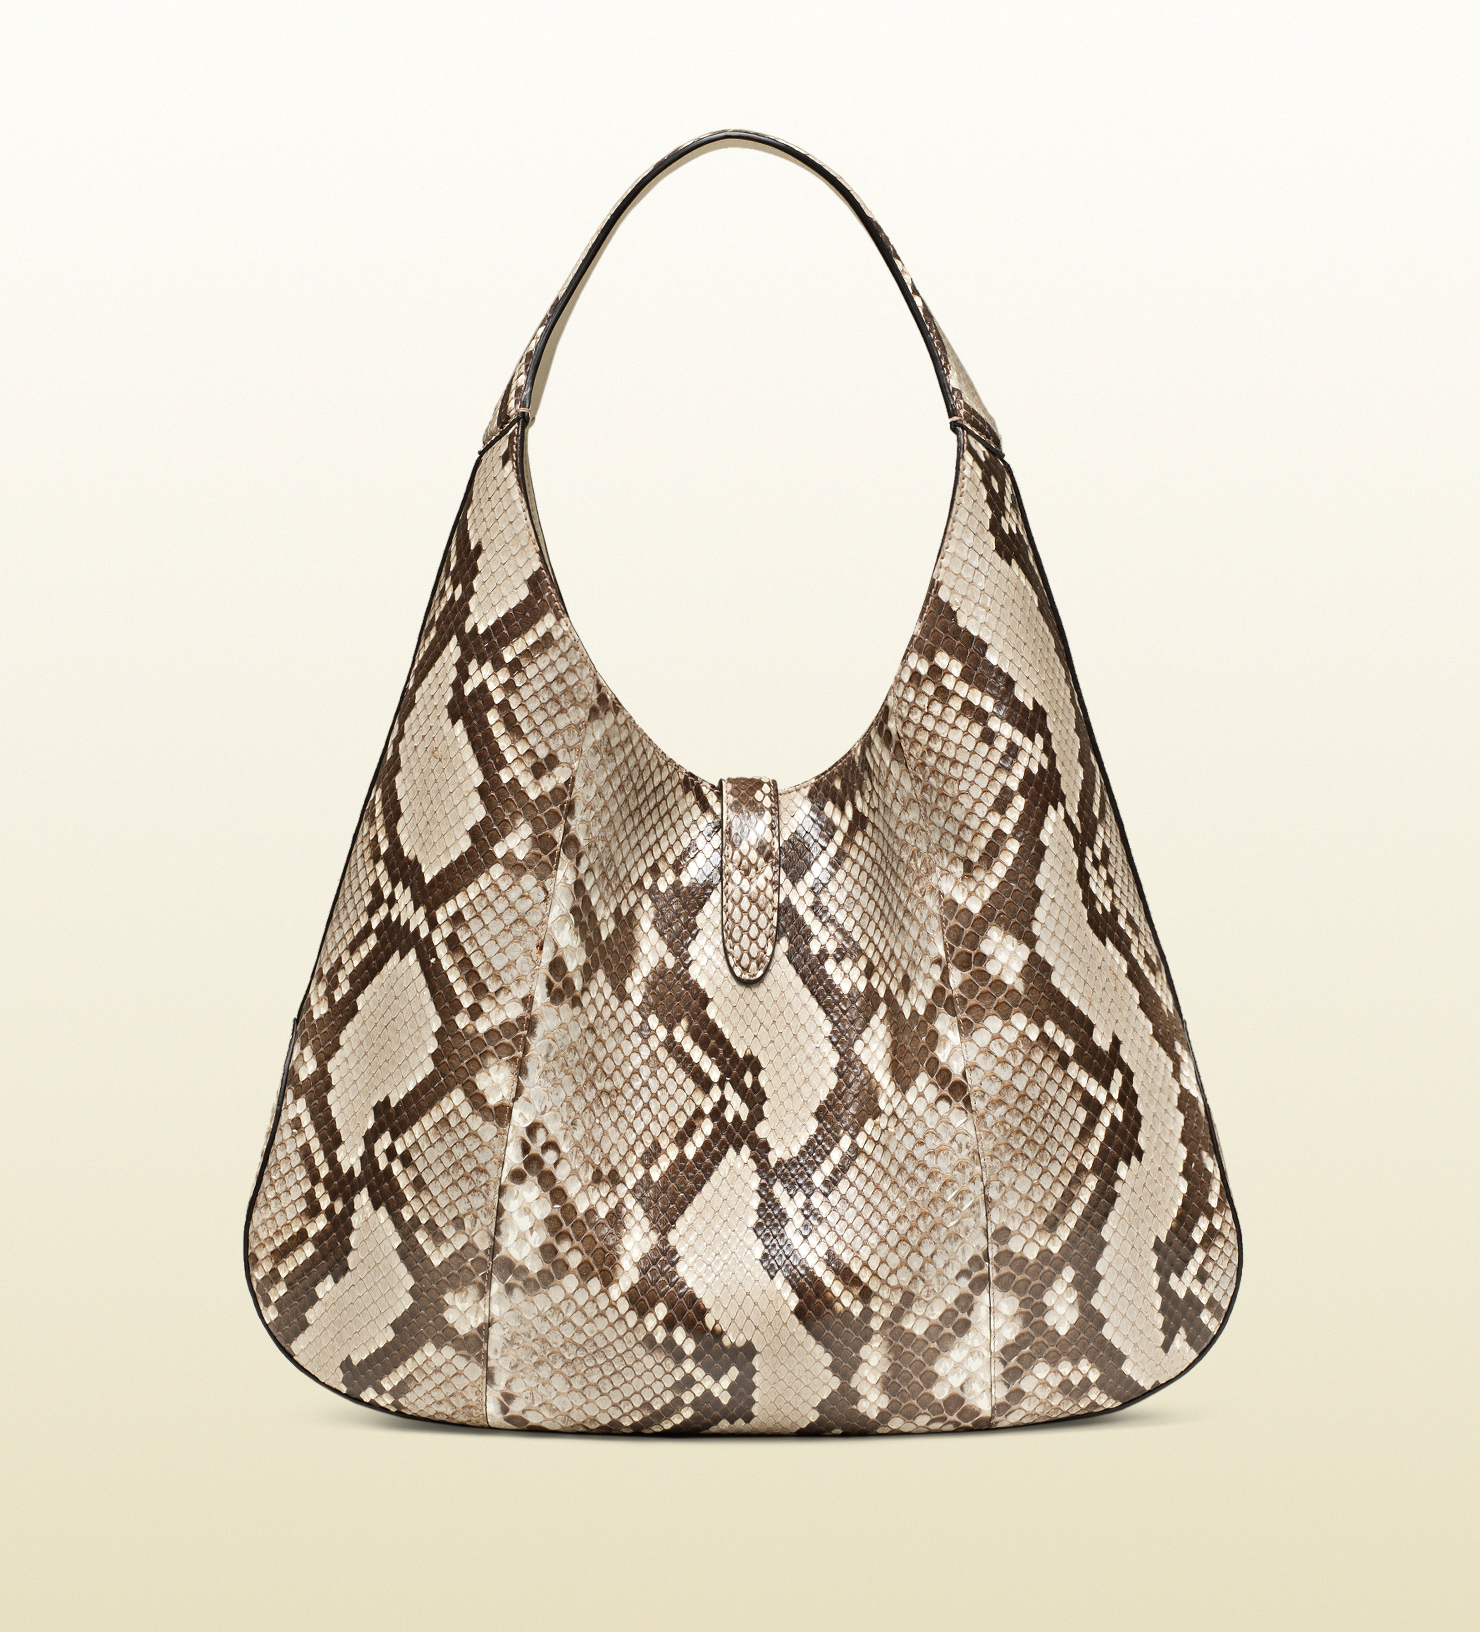 Lyst - Gucci Jackie Soft Python Hobo in Natural 34bca3a553